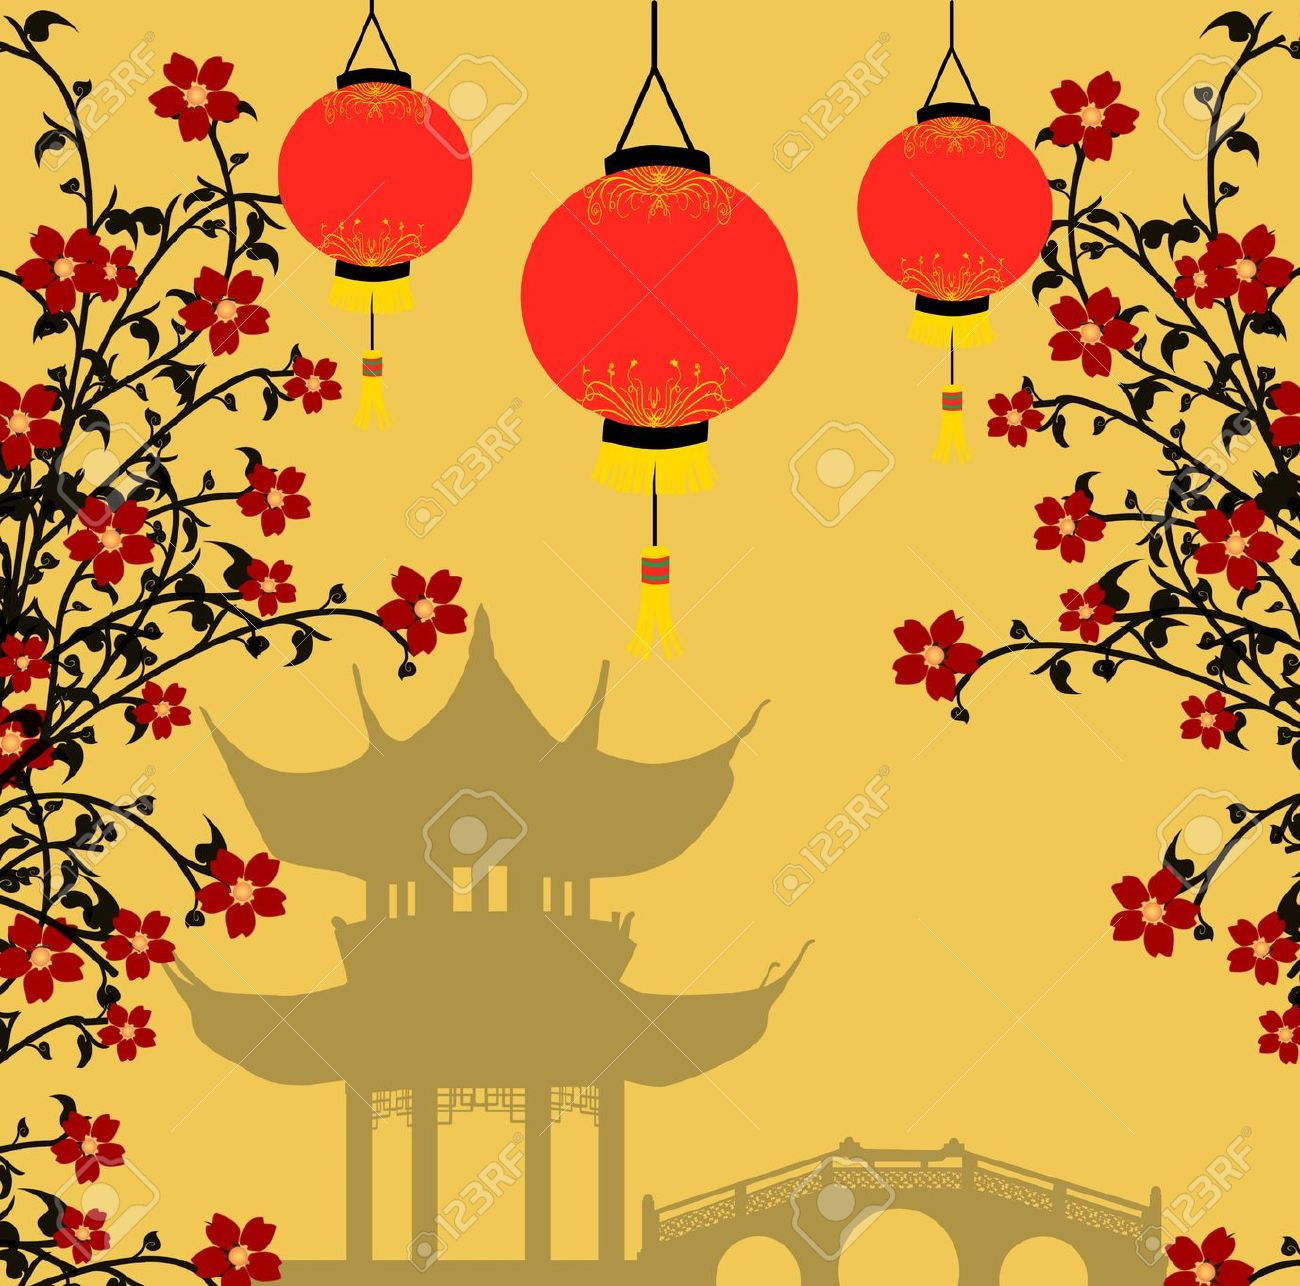 Chinese Lanterns Drawing at GetDrawings.com | Free for personal use ...